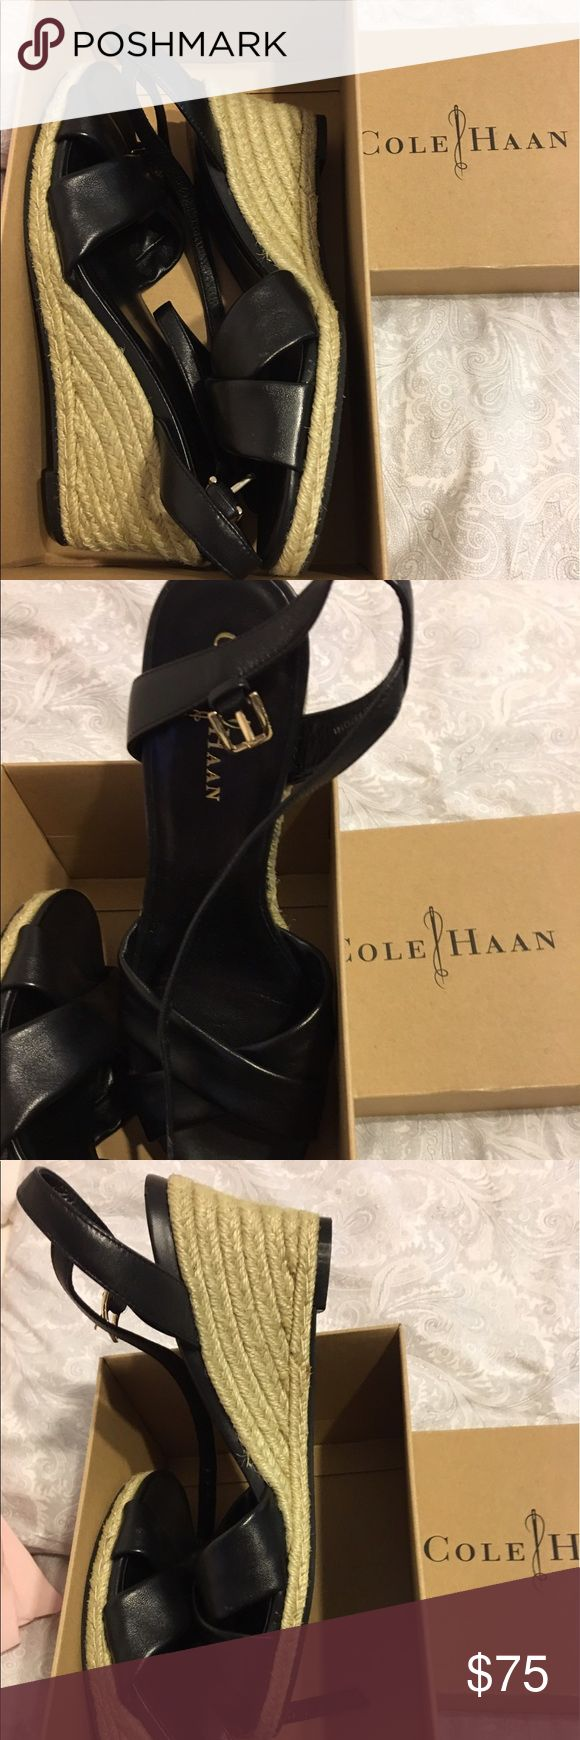 BRAND NEW Cole Haan Black Wedge Sandal size 8 BRAND NEW! NEVER worn Cole Haan Wedge Sandal in size 8. Leather w rope. Bought in Neimans a few yrs ago. Smoke-free house!! Cole Haan Shoes Wedges